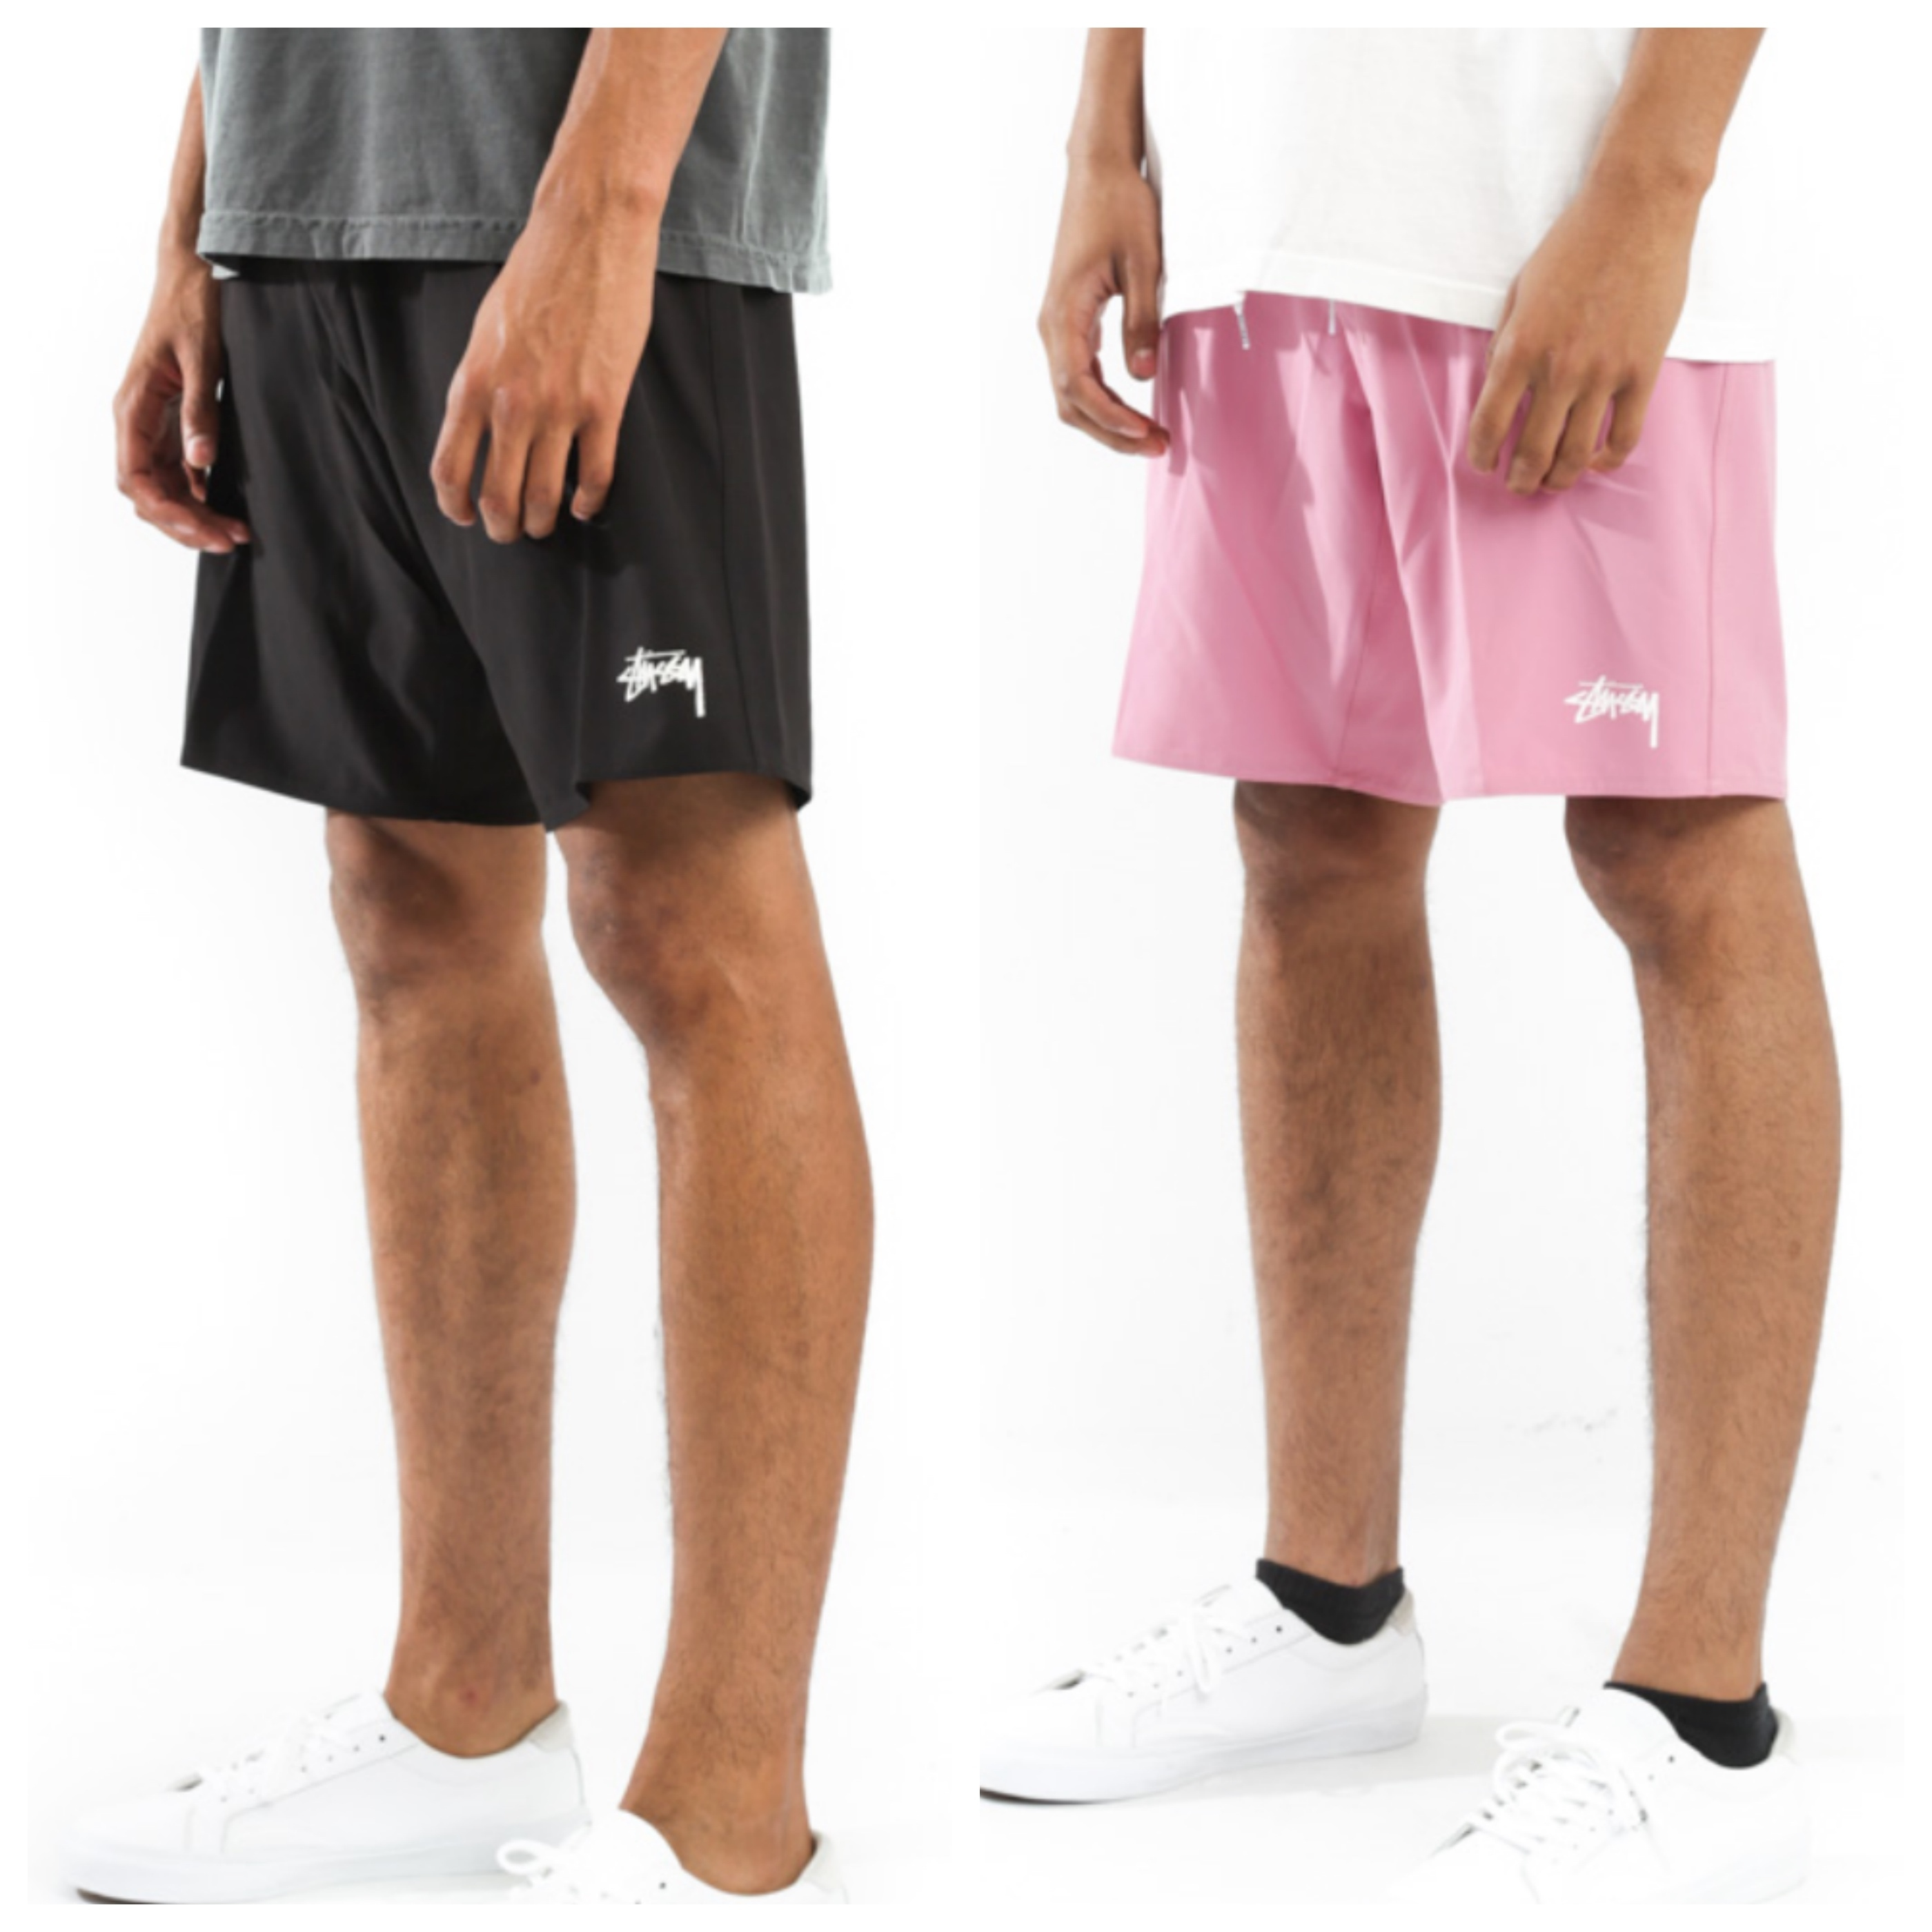 【送料,関税込み】STUSSY Stock Trunks